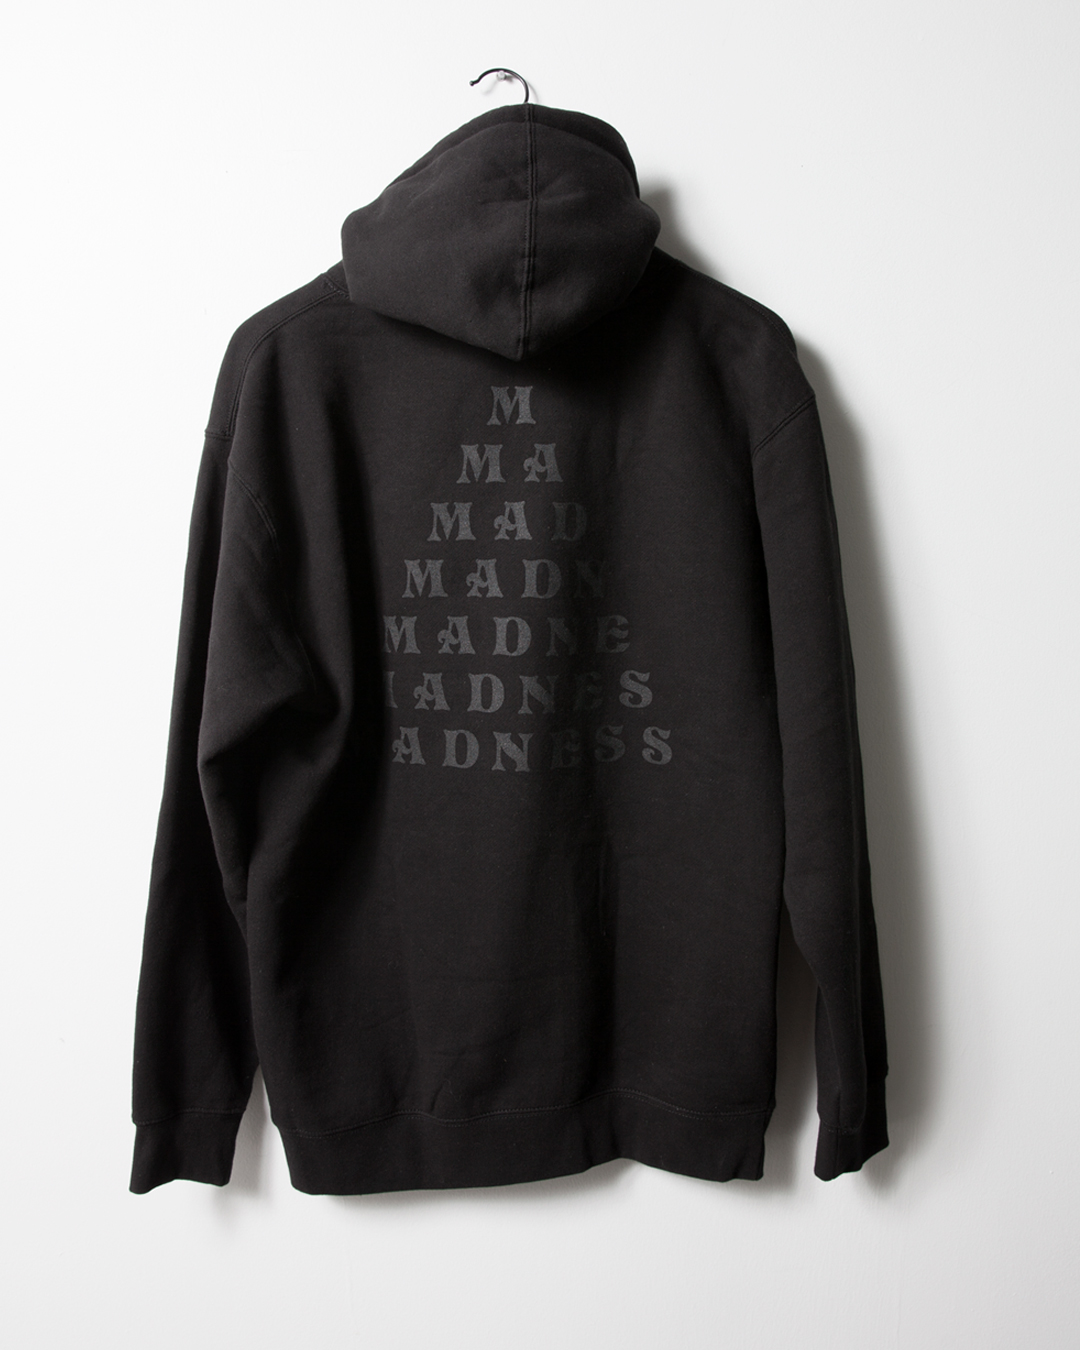 madness-skateboards-BAR-BLACK-PULLOVER-BACK-1350.jpg